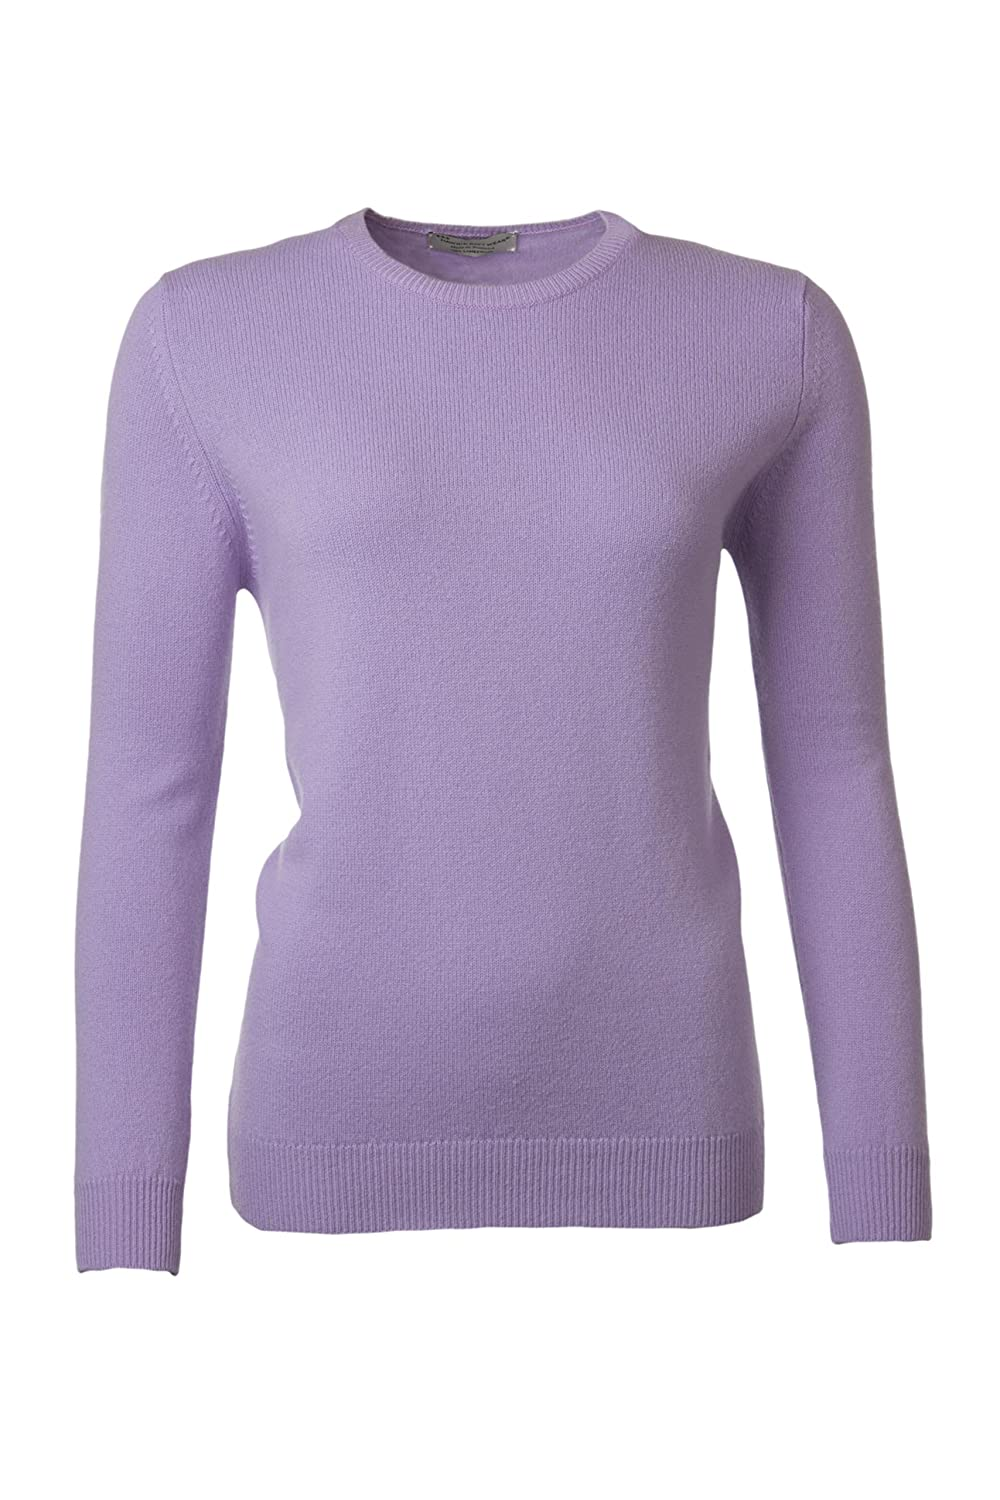 78af00808b Great   British Knitwear Ladies HL105 100% Lambswool Plain Round Neck  Sweater. Made in Scotland at Amazon Women s Clothing store